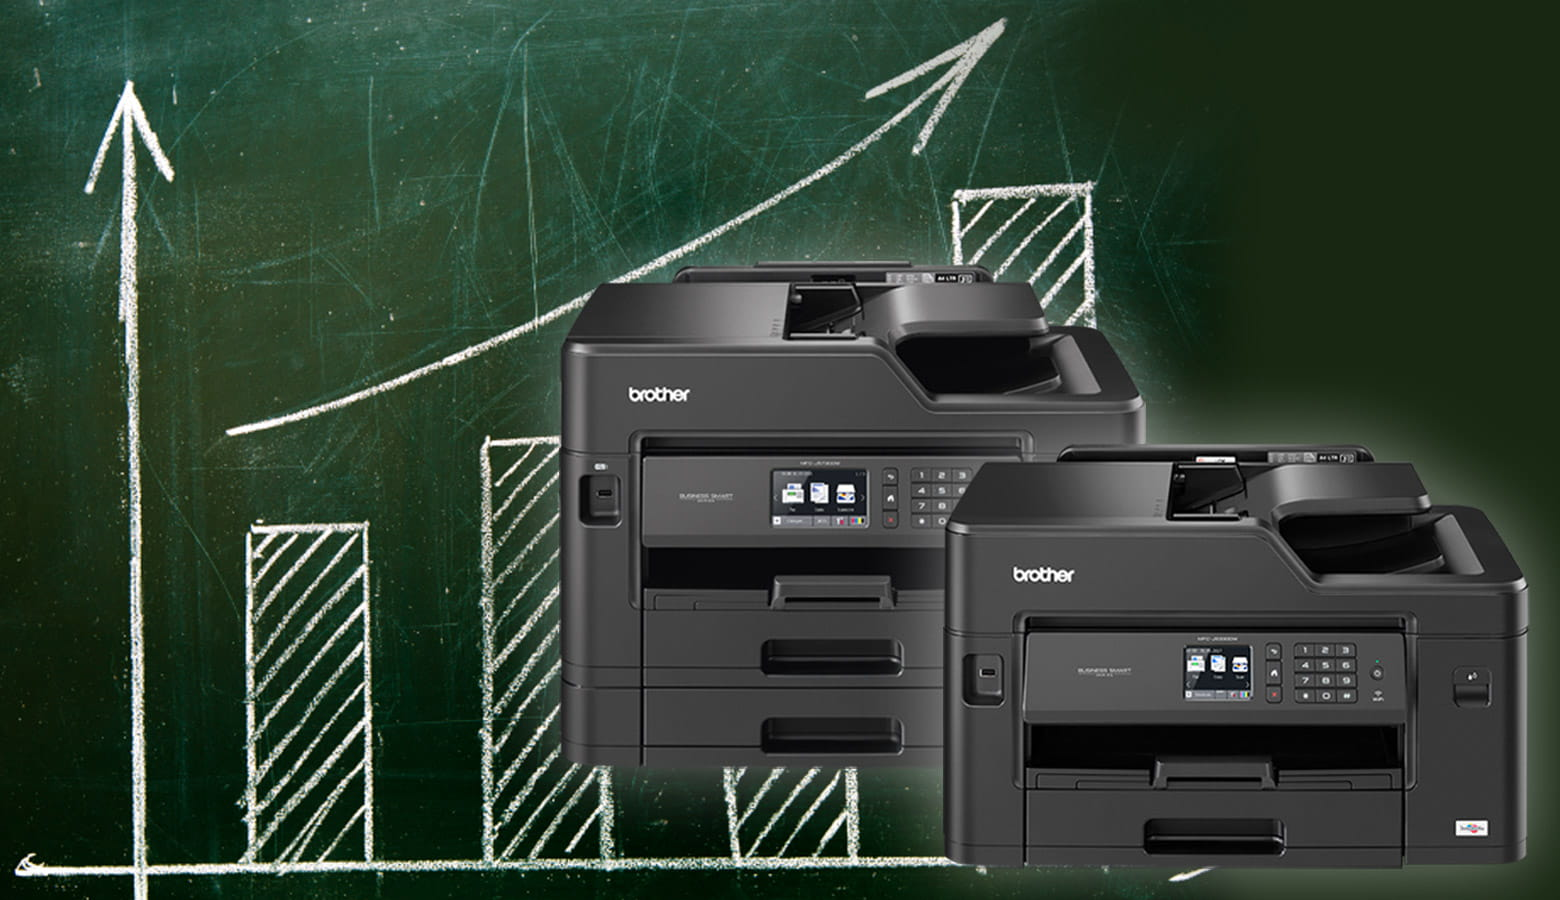 Gamma Brother Business Smart con stampante multifunzione inkjet MFC-J5330DW e MFC-J5730DW